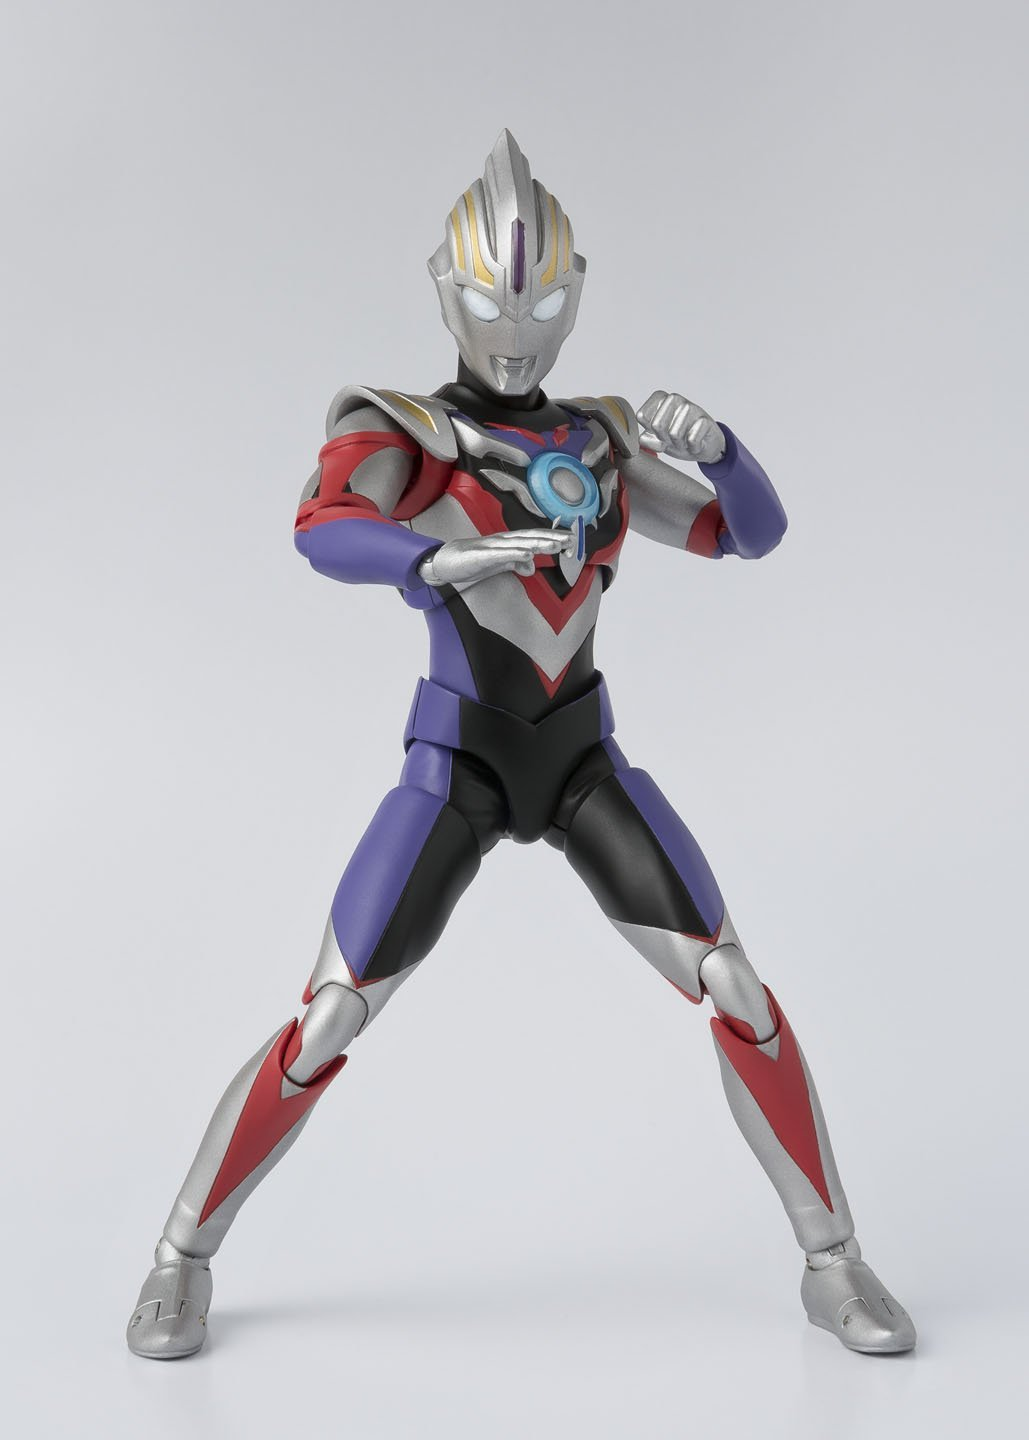 Ultra Hero Orb 06 Ultraman Orb Orb Trinity Character Toy Images List